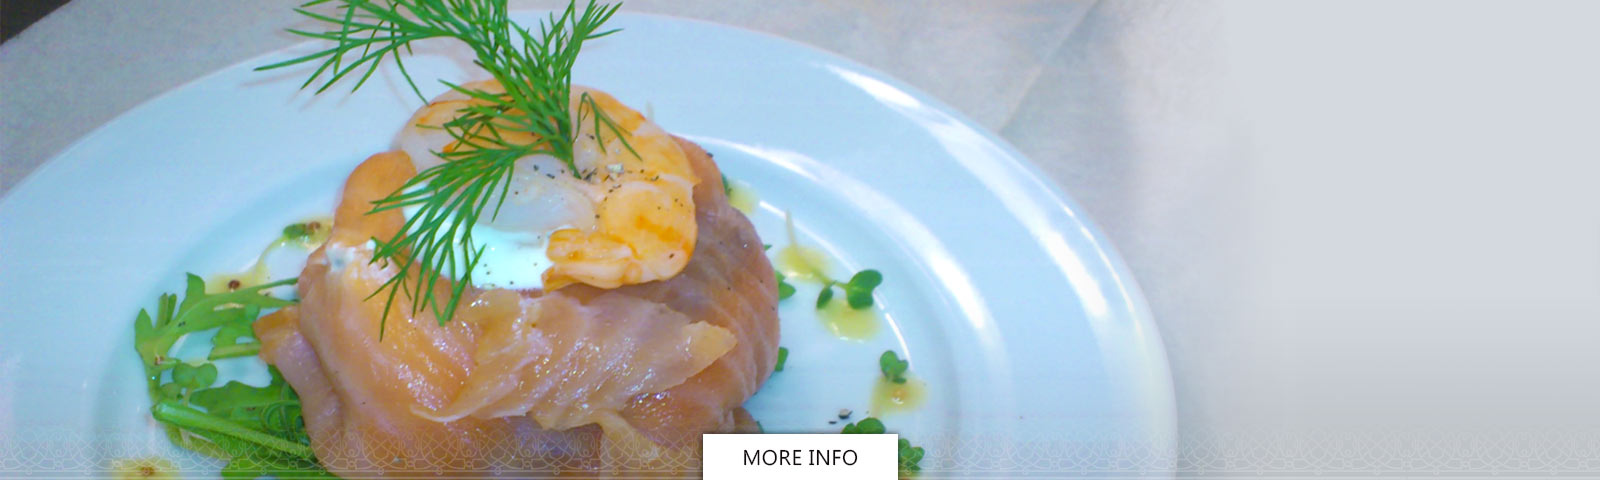 Cheese wrapped in Scottish salmon with dill garnish